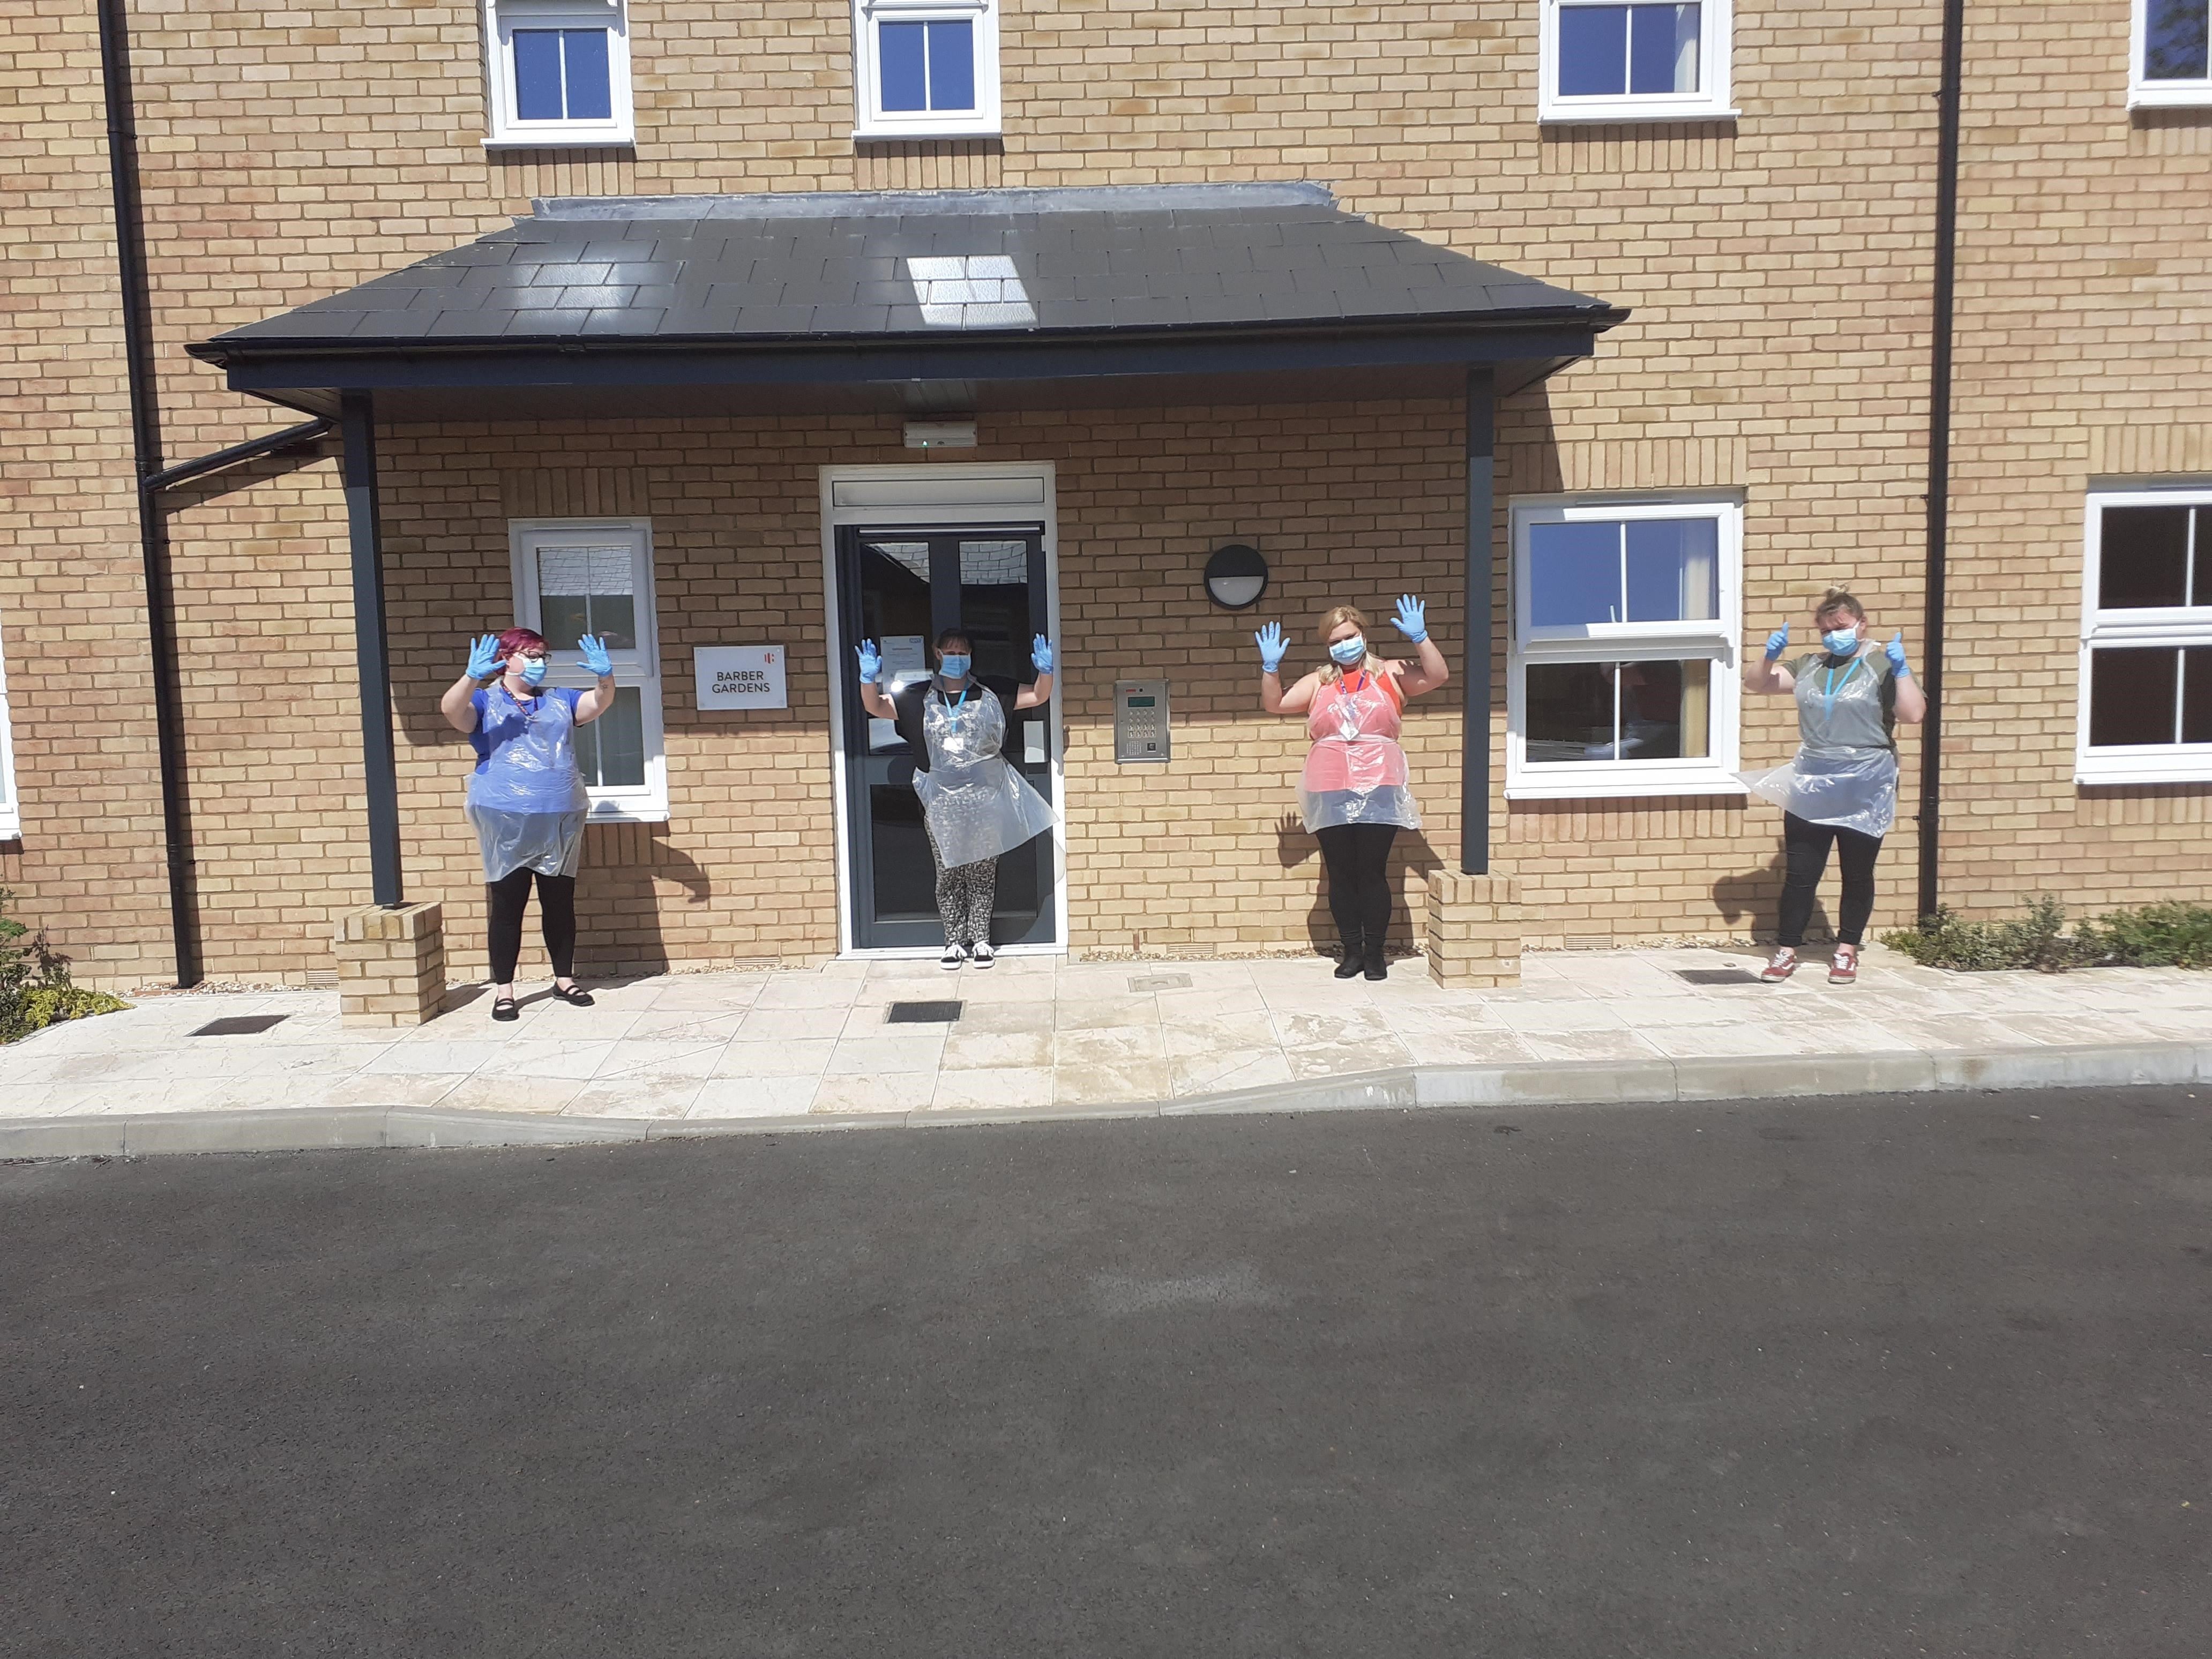 Staff outside the service wearing PPR